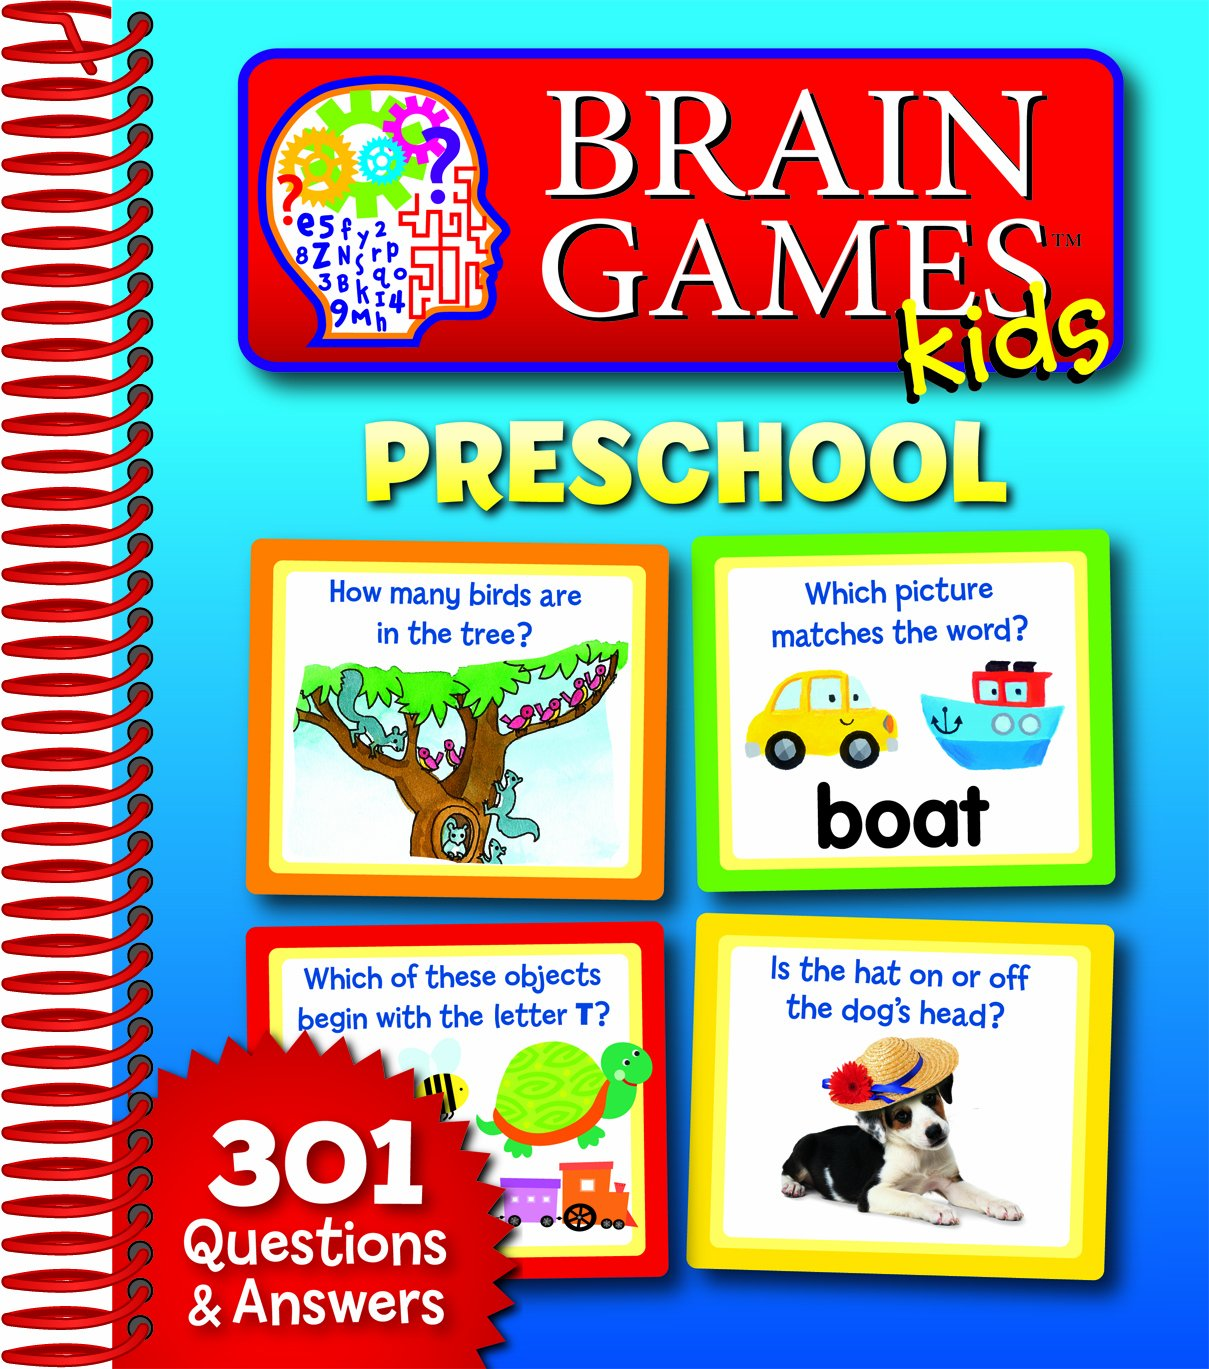 Brain Games Kids Preschool Editors Of Brain Games